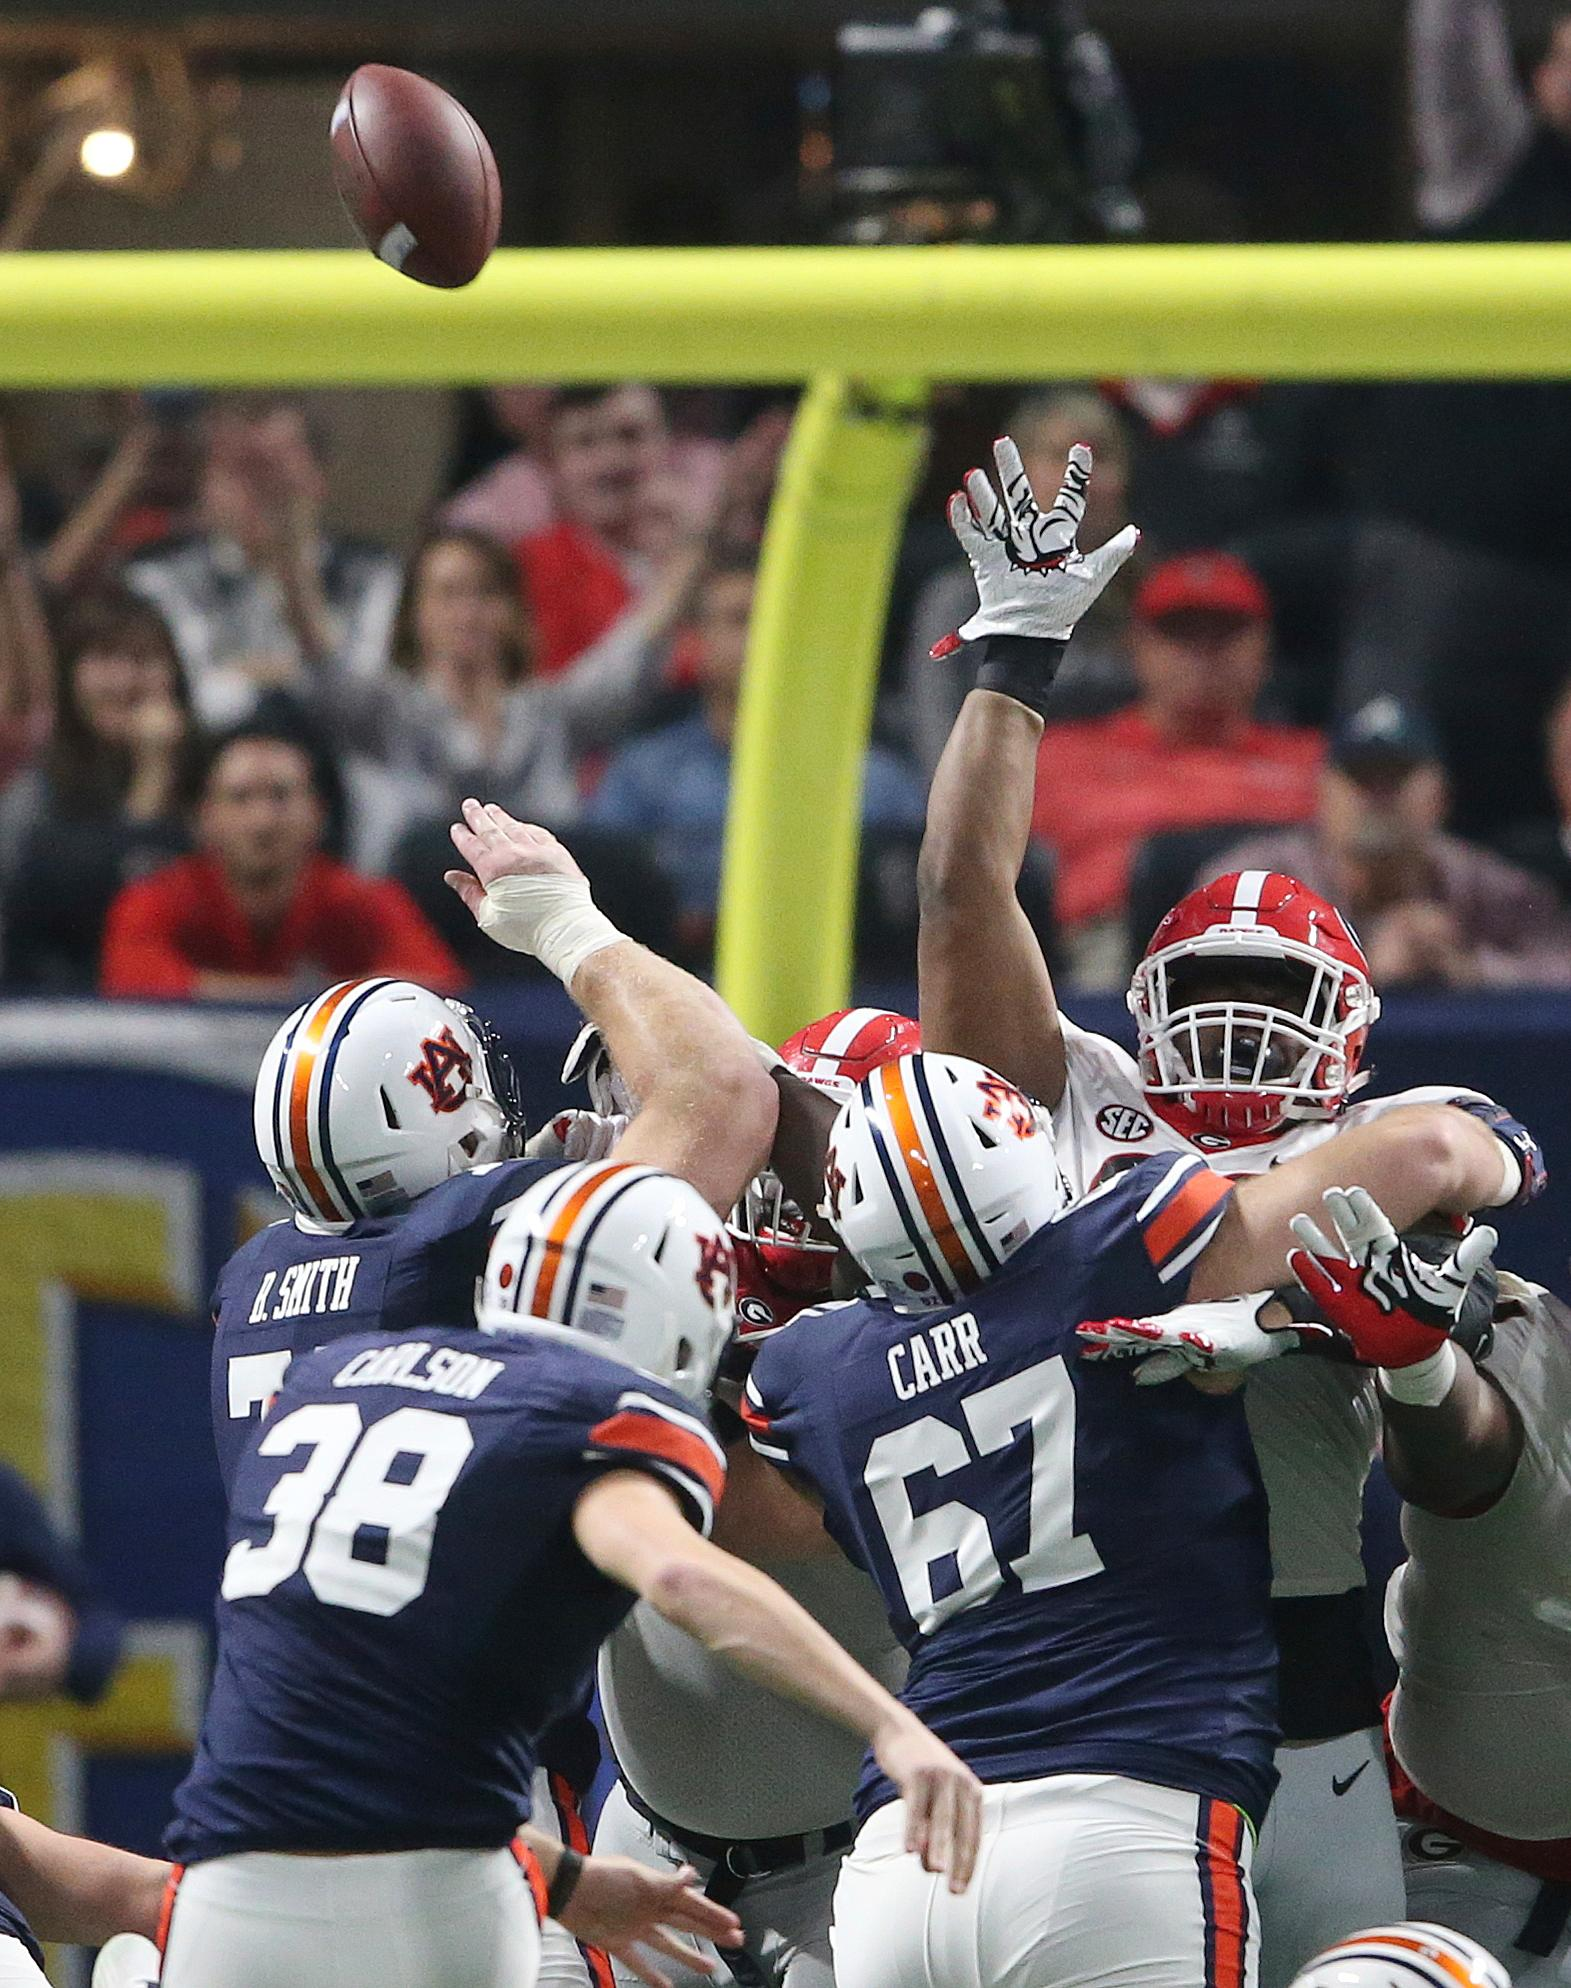 Georgia defensive tackle DaQuan Hawkins-Muckle , right, blocks a field goal attempt by Auburn place kicker Daniel Carlson (38) during the second half of the Southeastern Conference championship NCAA college football game, Saturday, Dec. 2, 2017, in Atlanta. Georgia safety Dominick Sanders picked up the ball. (AP Photo/John Bazemore)